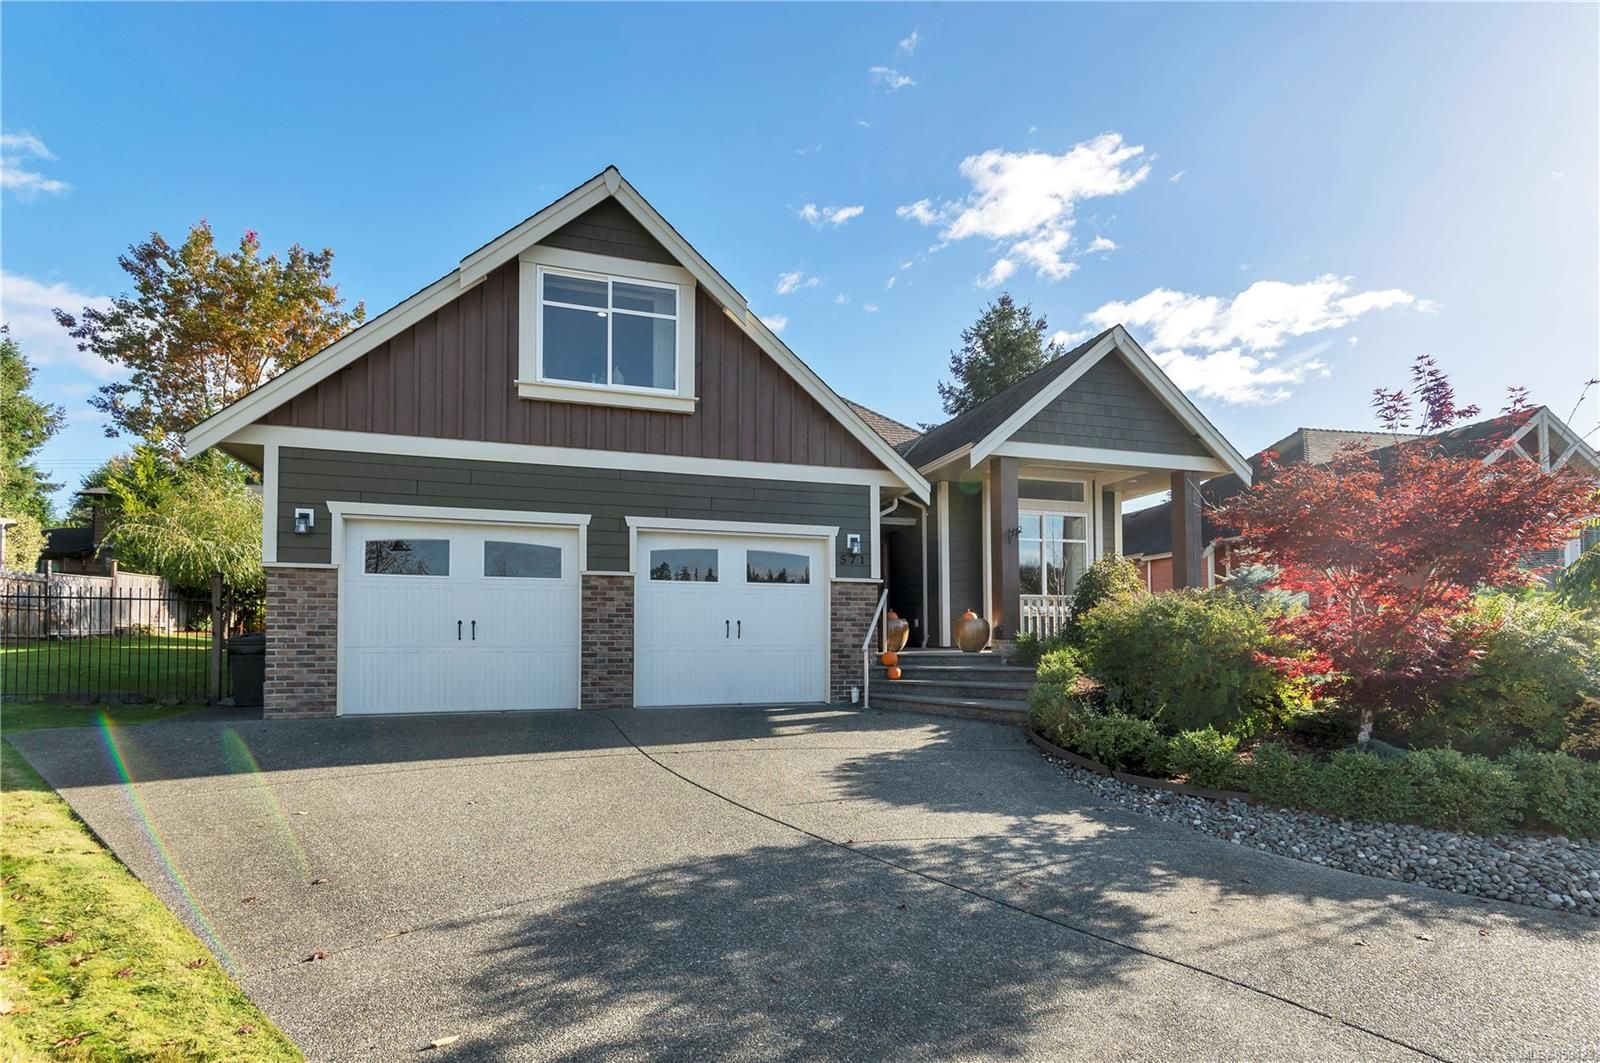 Main Photo: 571 Edgewood Dr in : CR Campbell River Central House for sale (Campbell River)  : MLS®# 859423